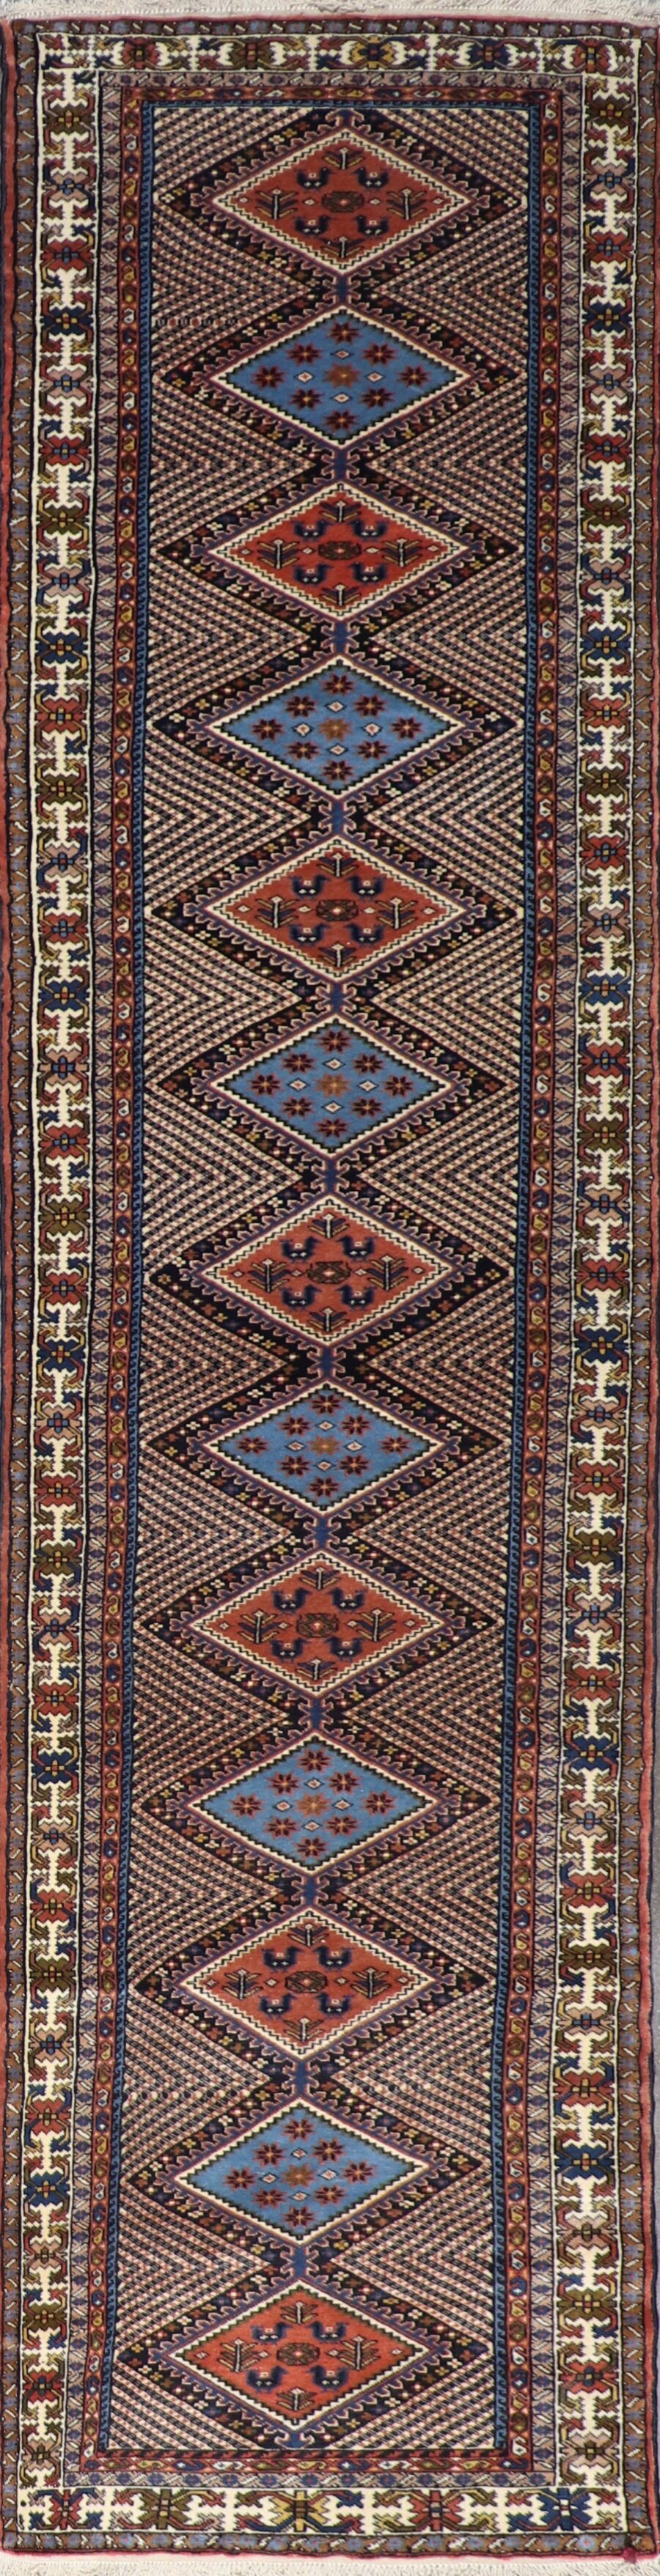 """2'10""""x13' Decorative Brown & Blue Wool Hand-Knotted Rug - Direct Rug Import   Rugs in Chicago, Indiana,South Bend,Granger"""